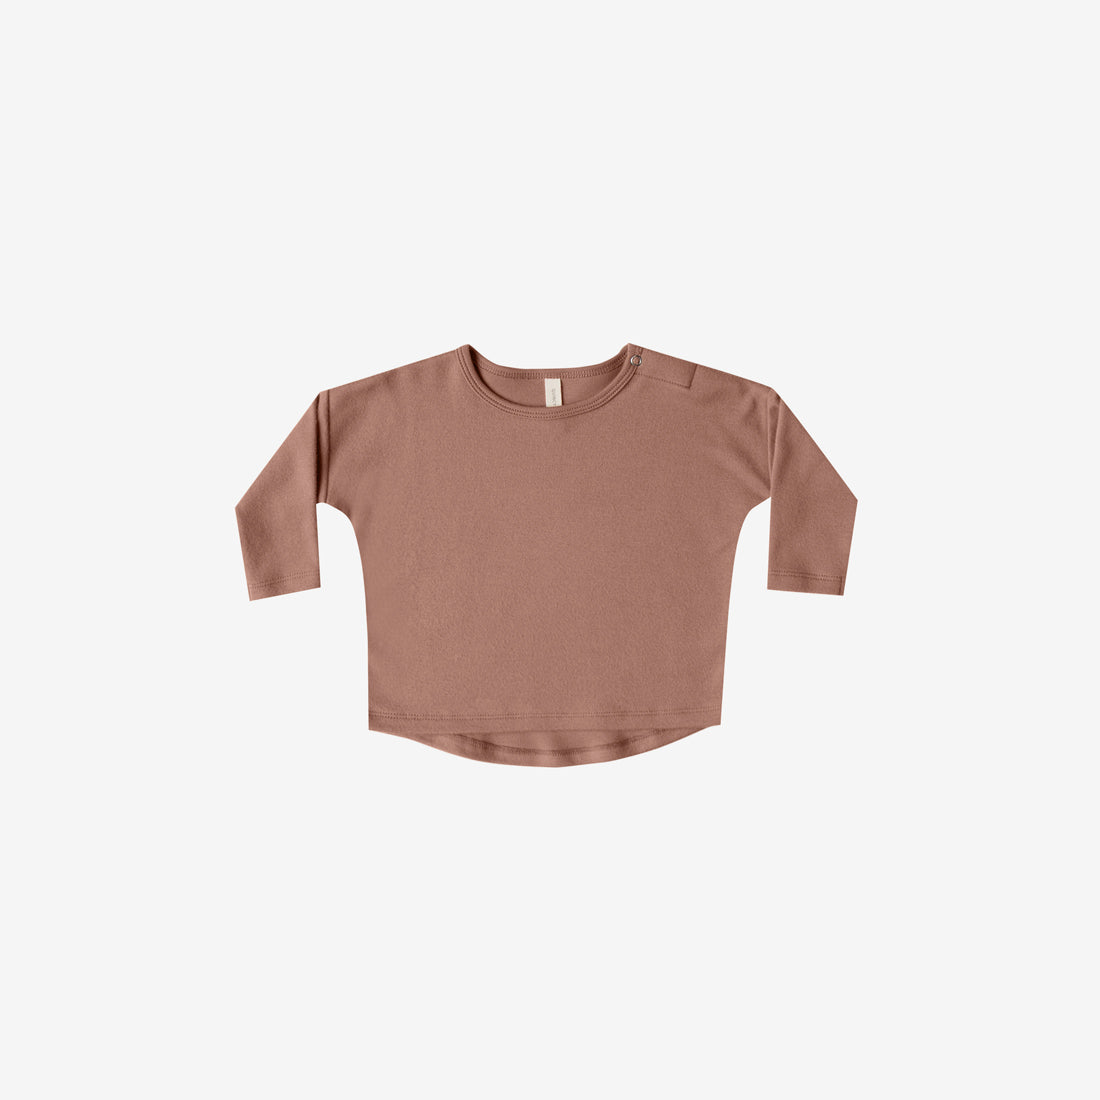 Organic Brushed Jersey L/S Baby Tee - Clay